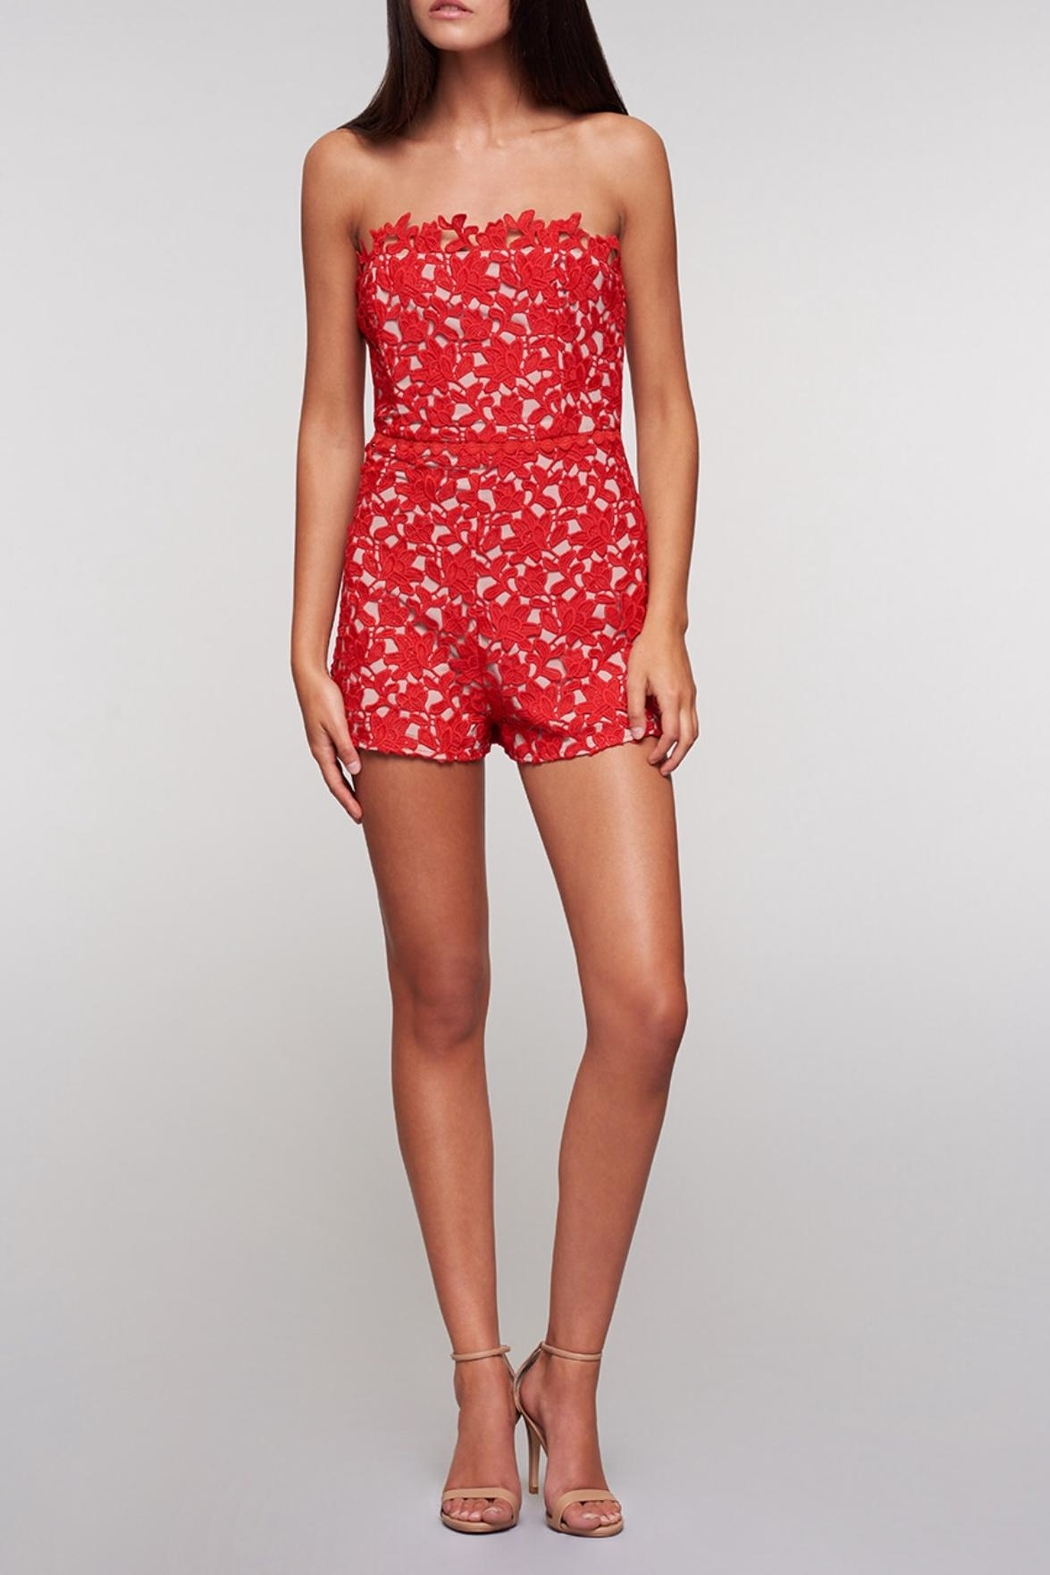 0b4f43e27796 Stylestalker Red Lace Romper from Germantown by On a Whim — Shoptiques